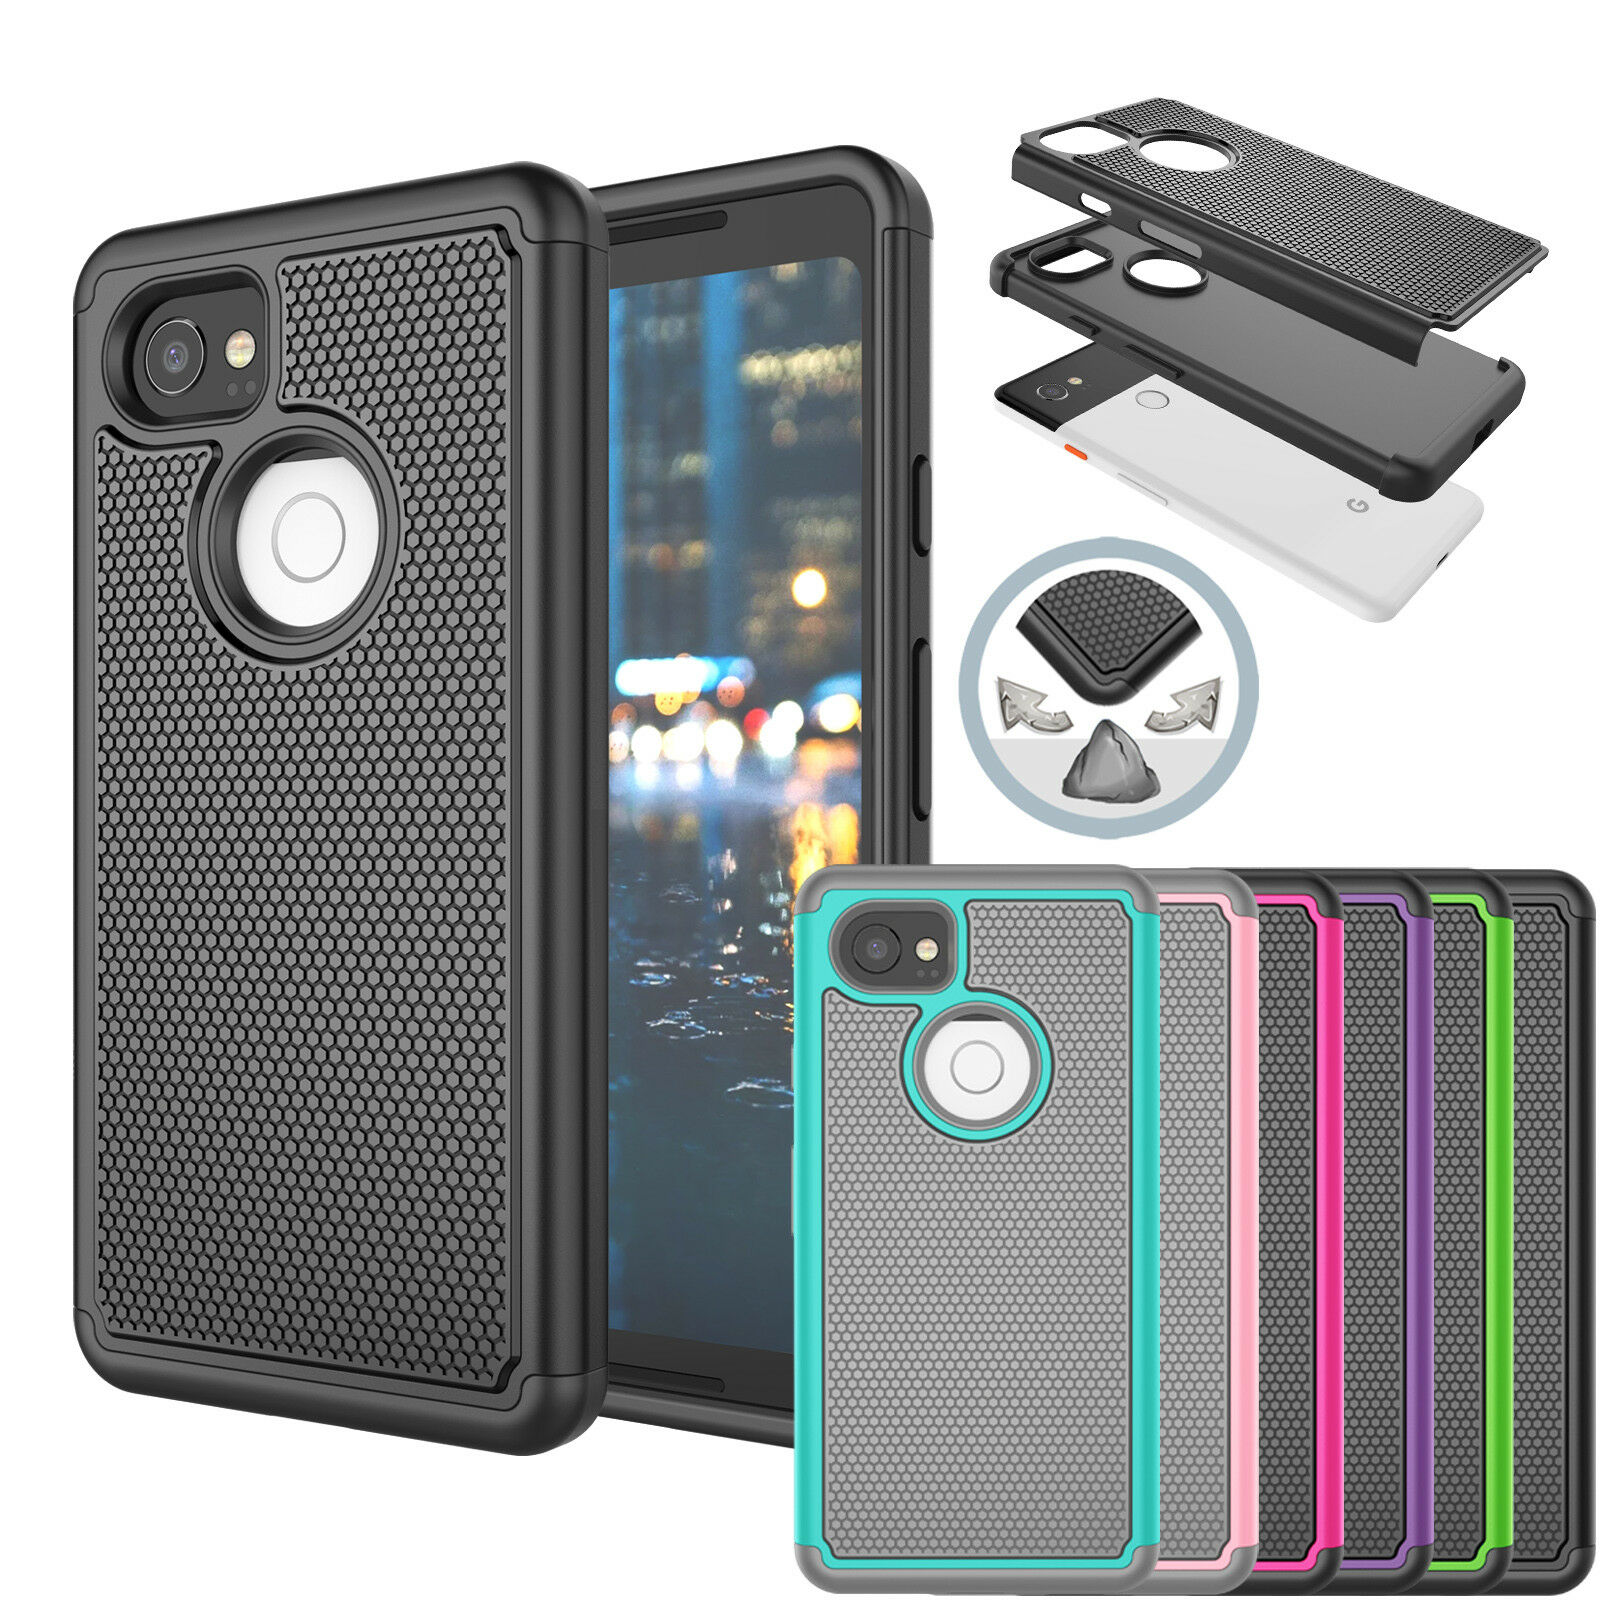 Купить saveupmore 2 in 1 Combo & Best Protection - PC Shockproof Hybrid Slim Rugged Rubber Hard Case Cover For Google Pixel 2 XL